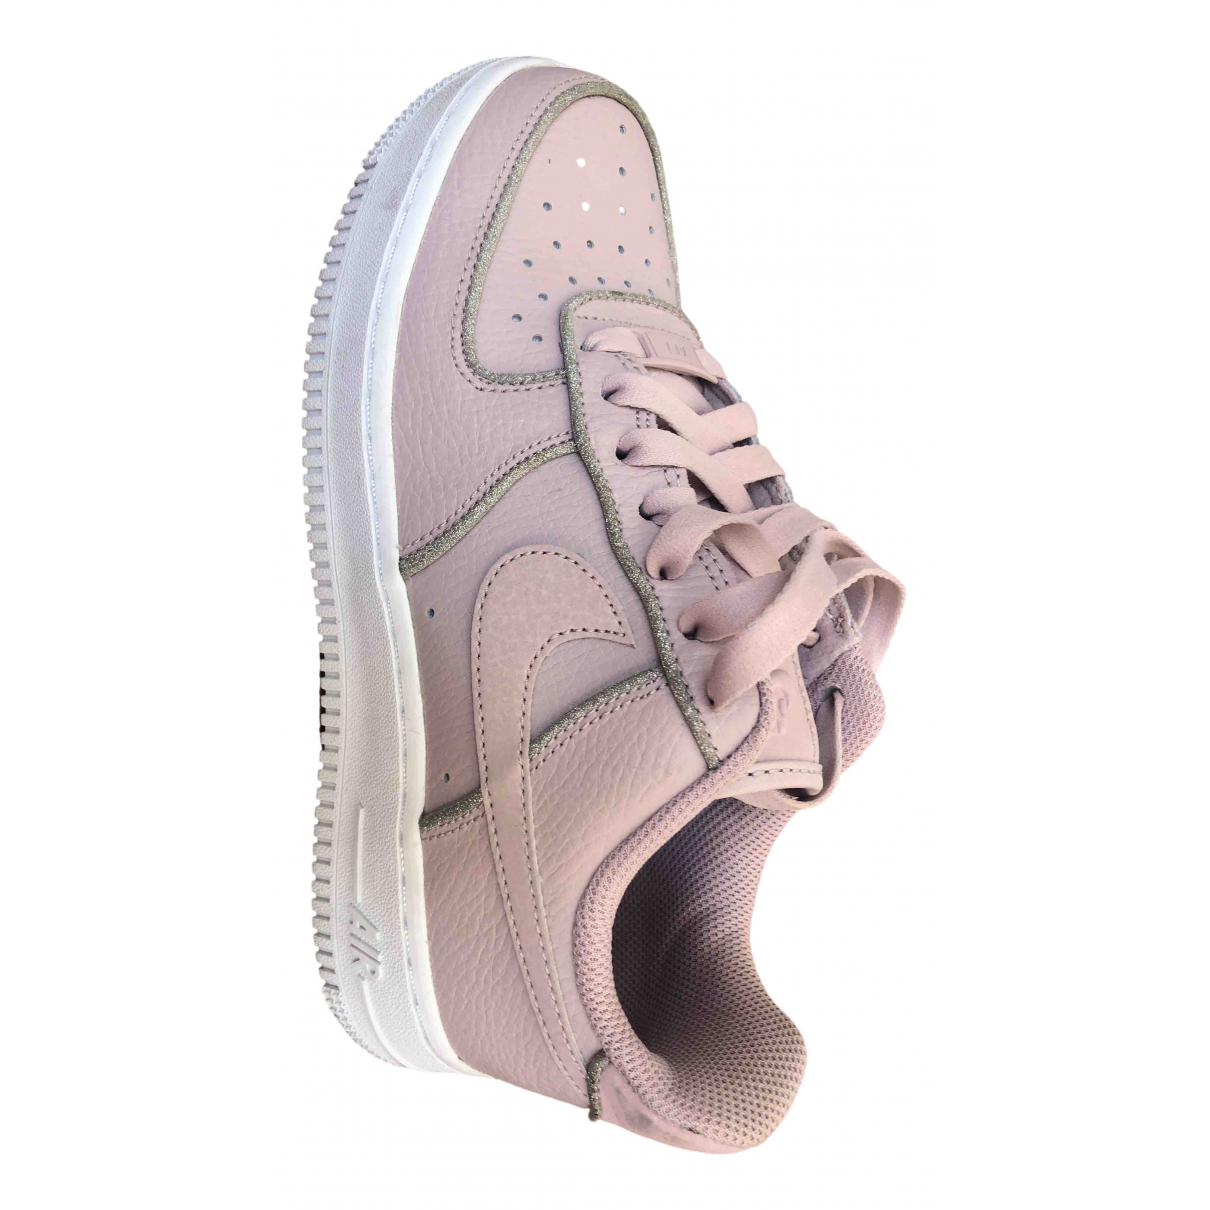 Nike Air Force 1 Pink Leather Trainers for Women 36 EU